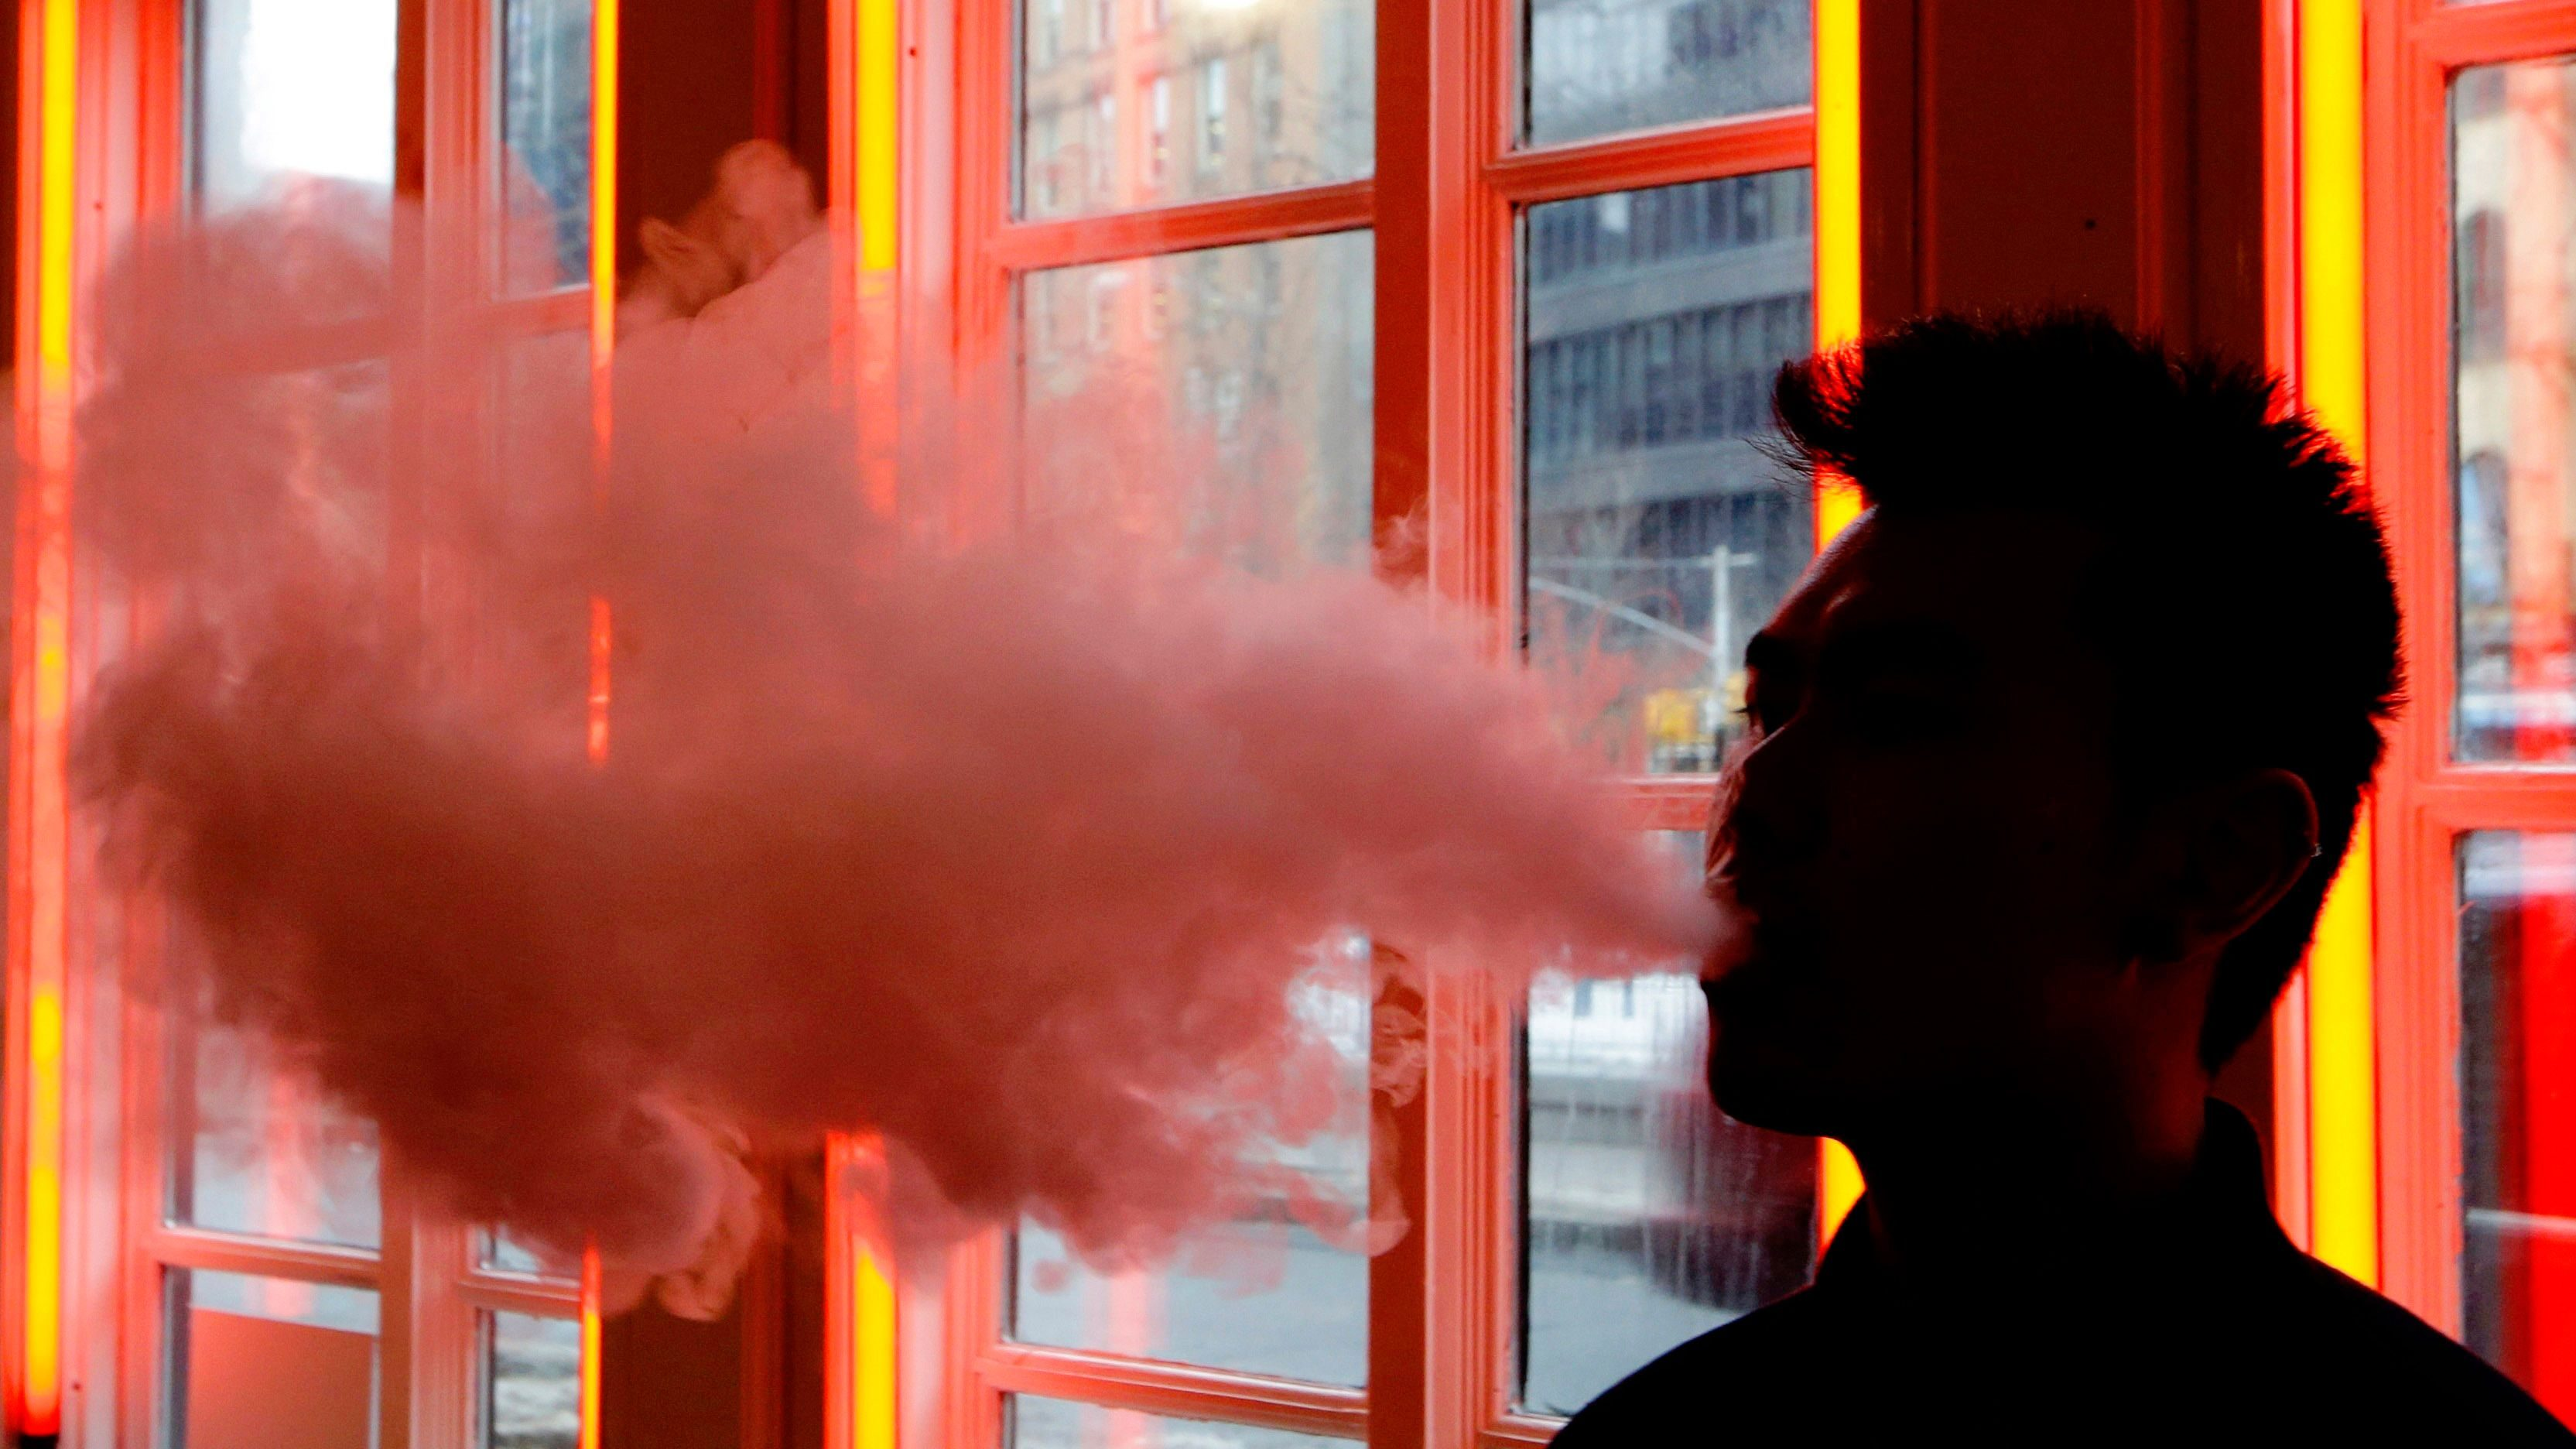 The FDA plans to ban flavored Juuls and other flavored e-cigarettes